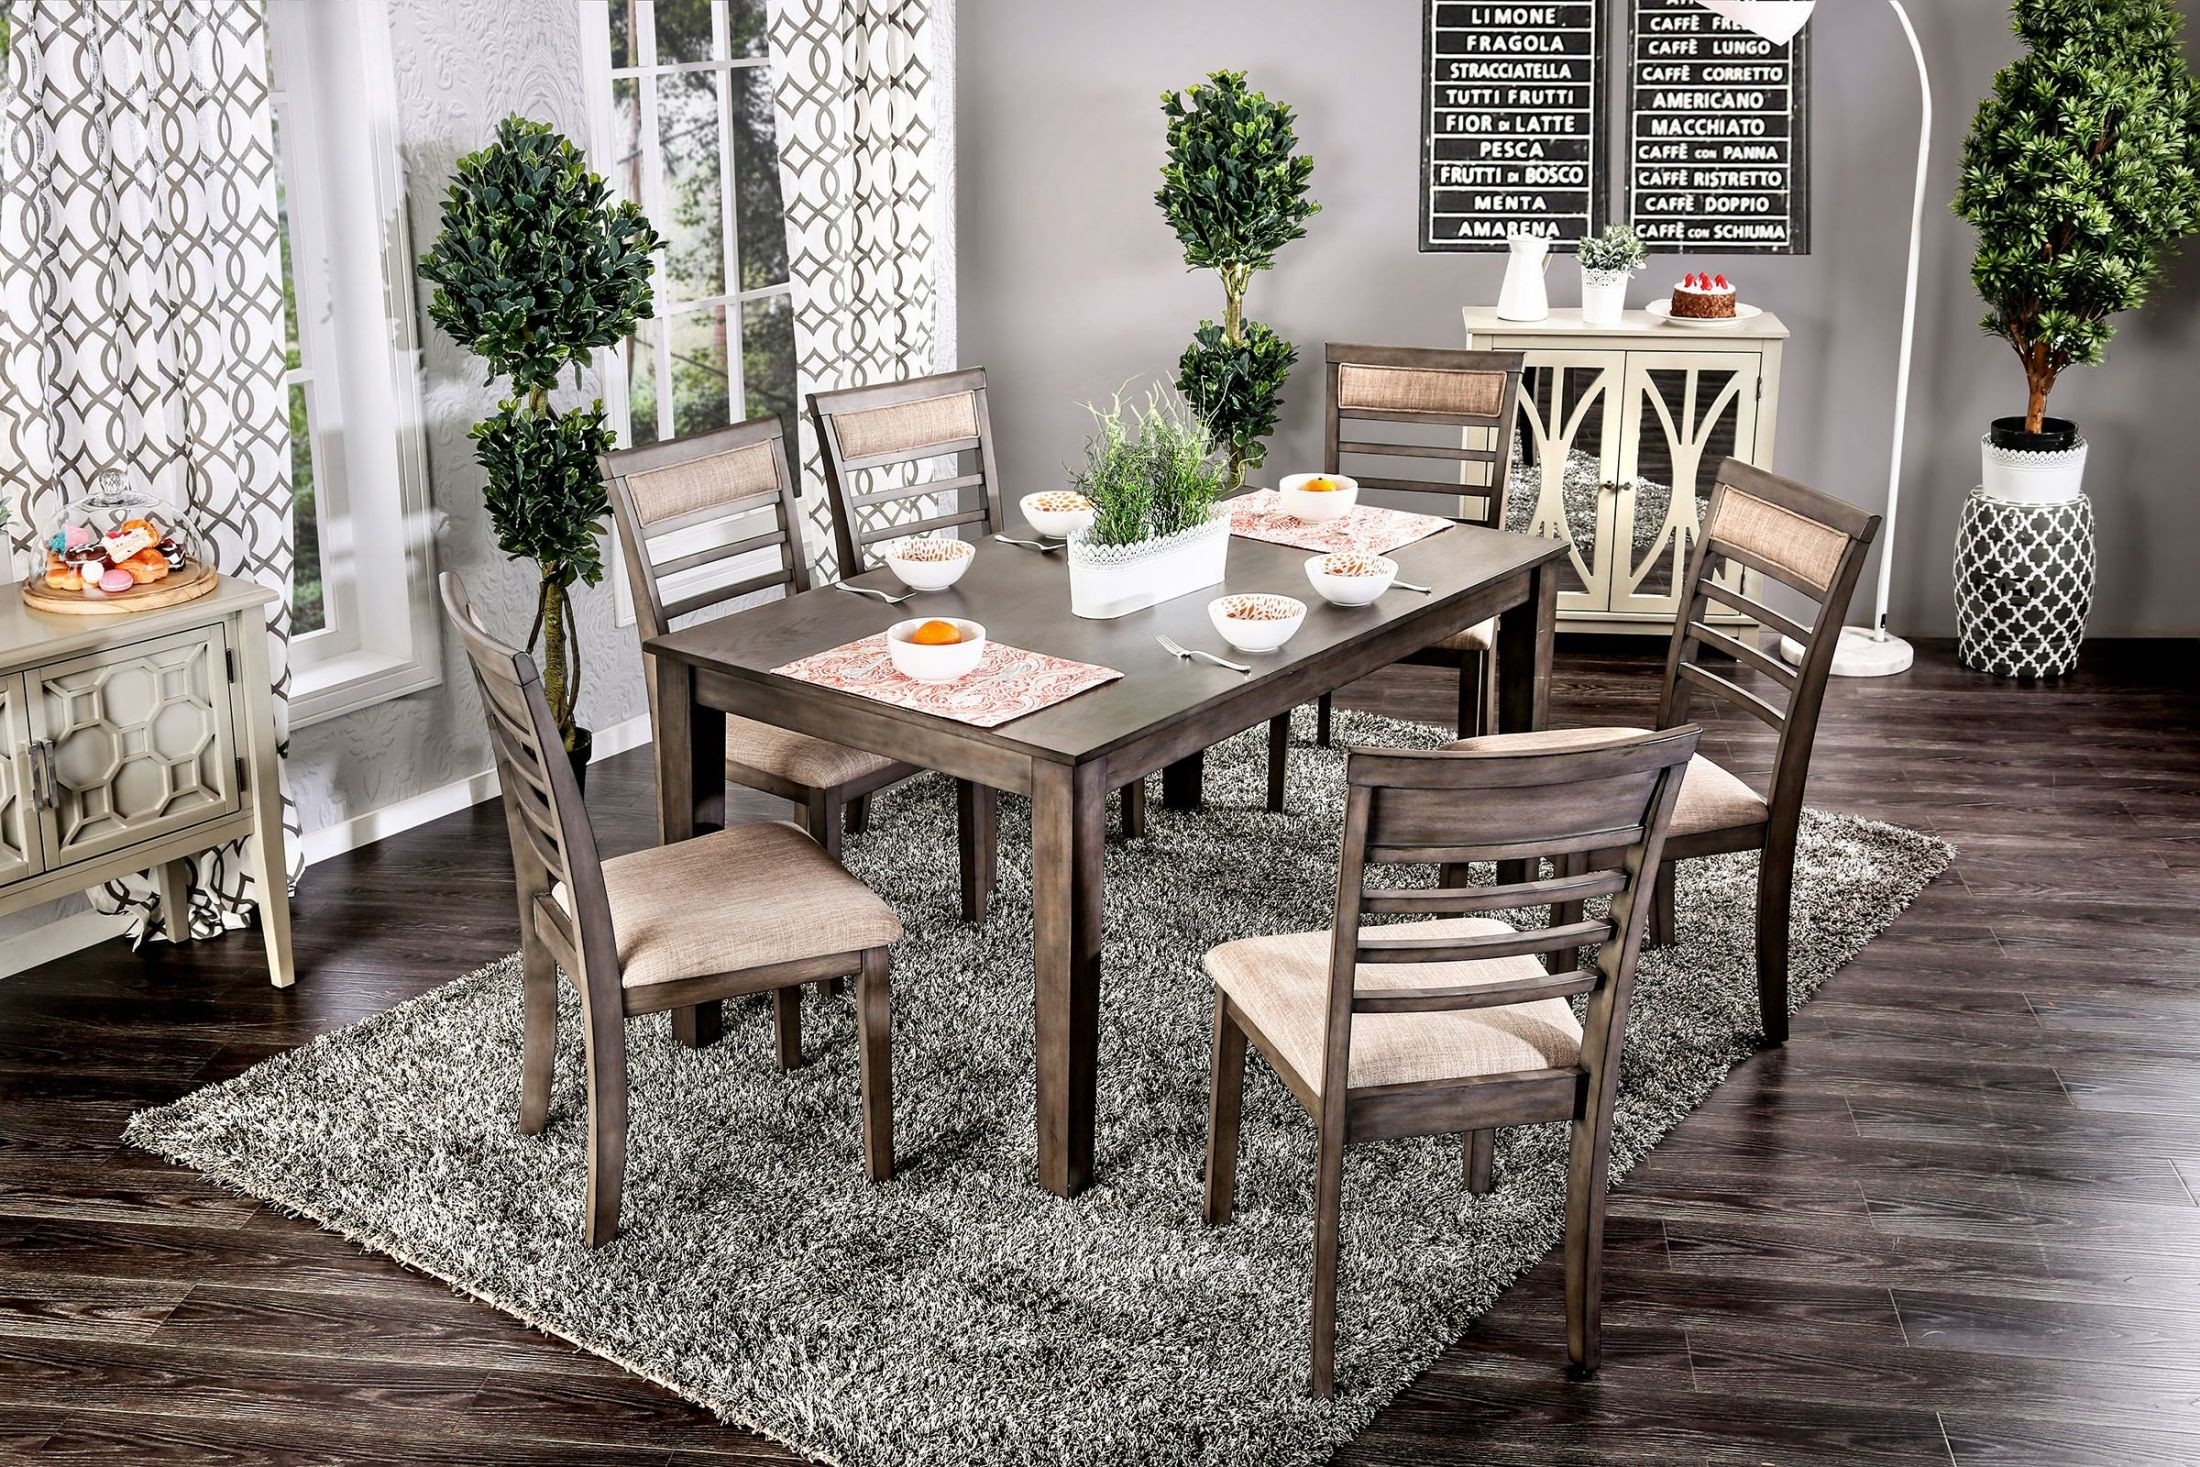 Taylah Weathered Gray 7 Piece Dining Set from Furniture of